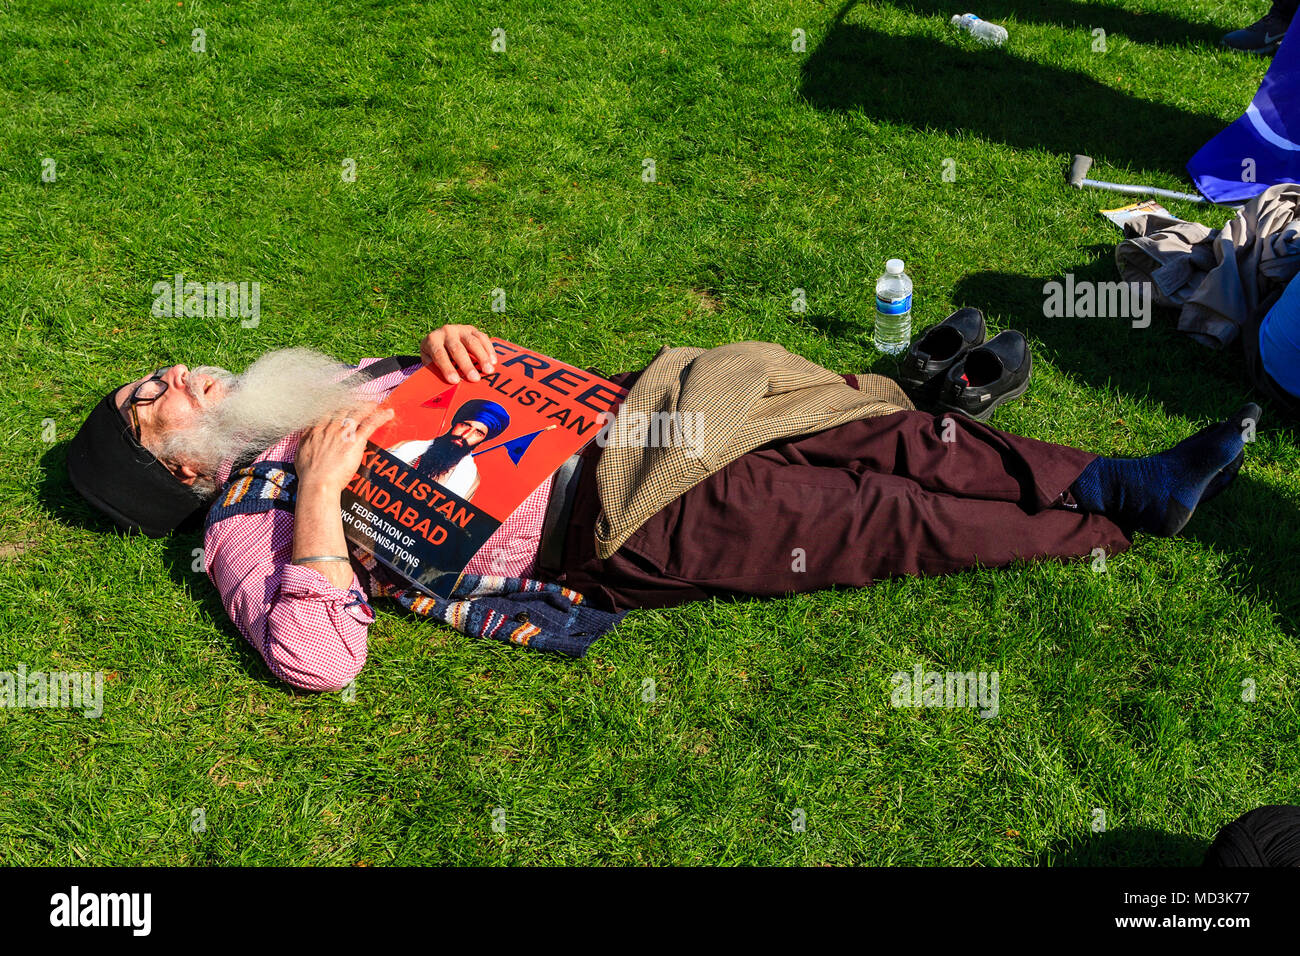 London, UK. 18th April 2018. A Sikh demonstrator rests in parliament Square after protesting against Indian Prime Minister Modi's visit to London, Parliament Square, London, Uk. Credit: Grant Rooney/Alamy Live News - Stock Image